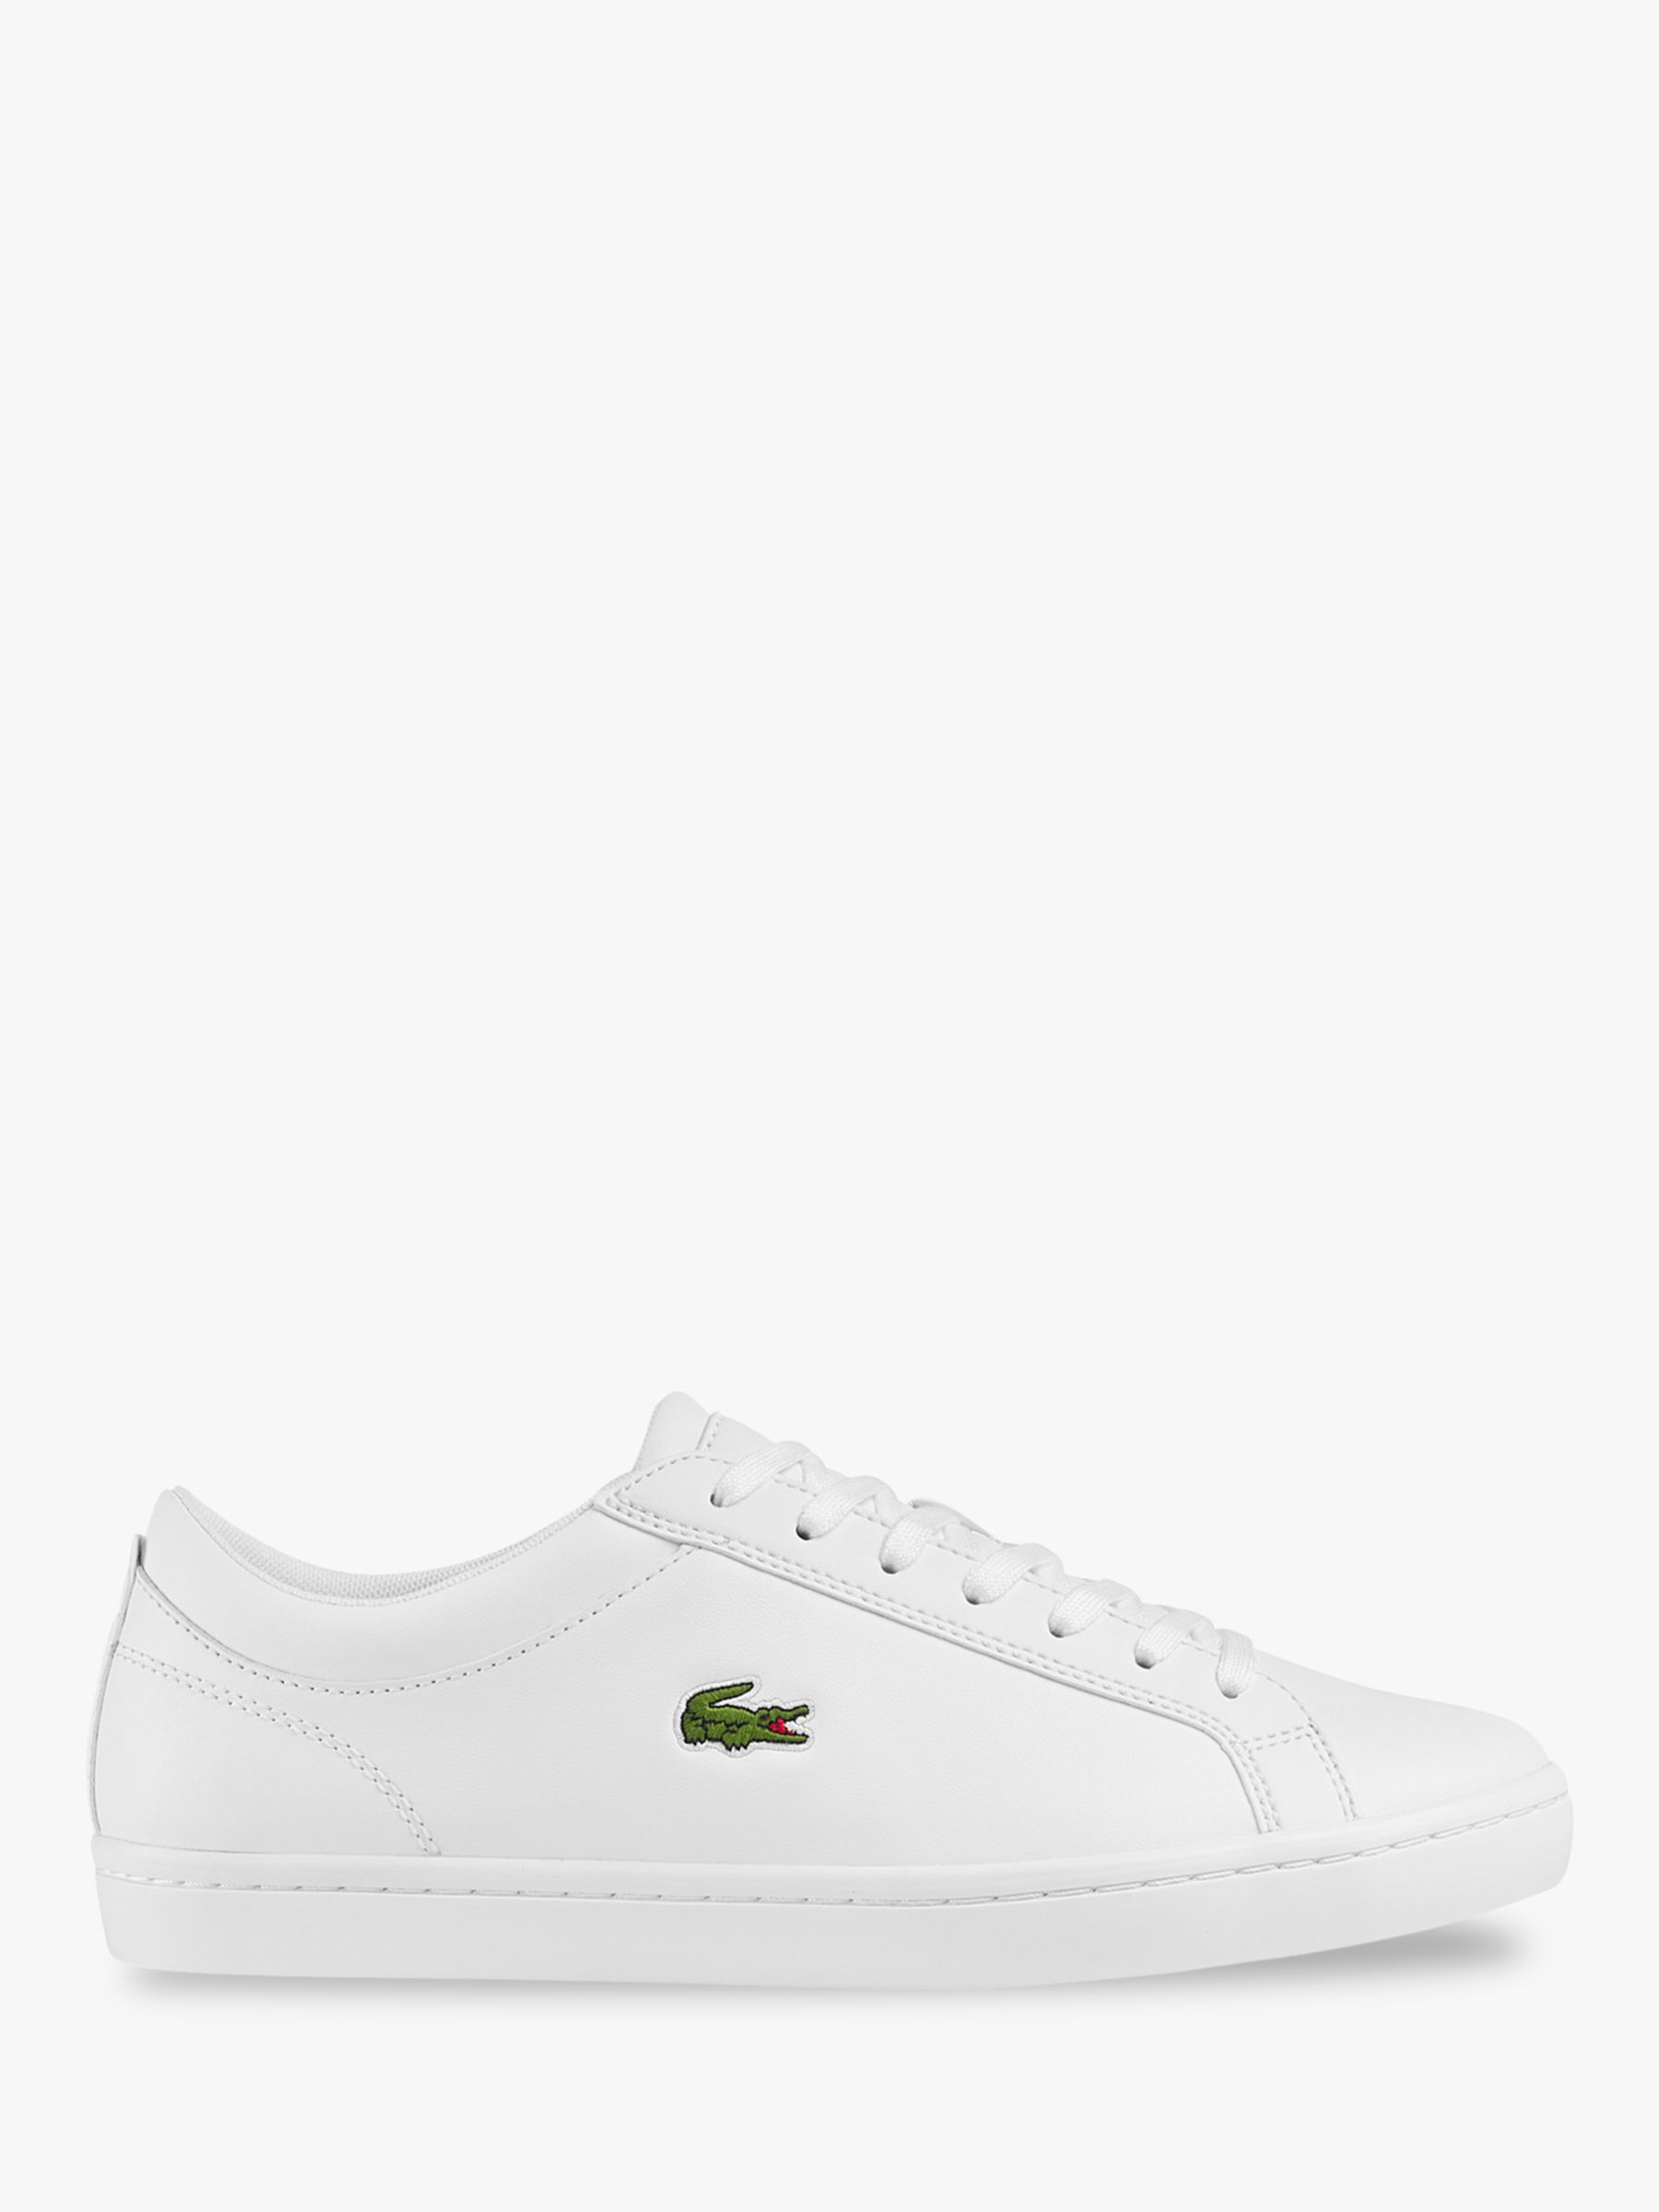 868c6e6f2 Lacoste Straightset Trainers